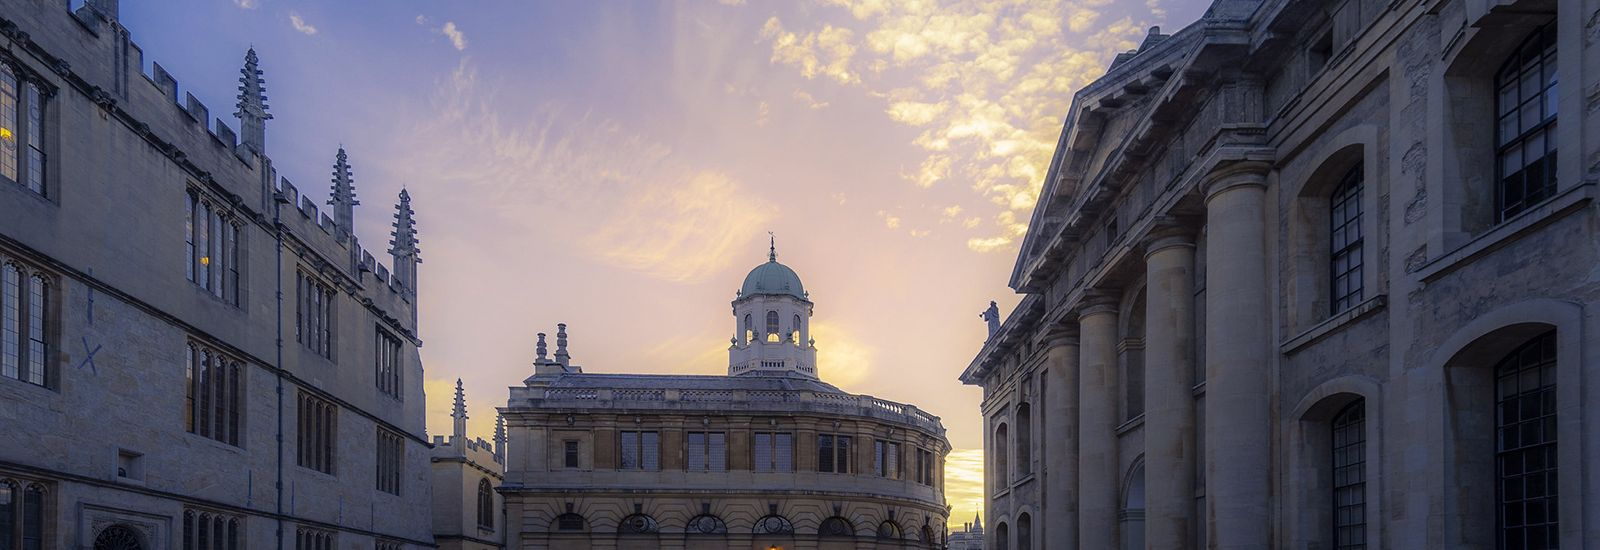 The Bodleian, Sheldonian and Clarendon buildings at sunset